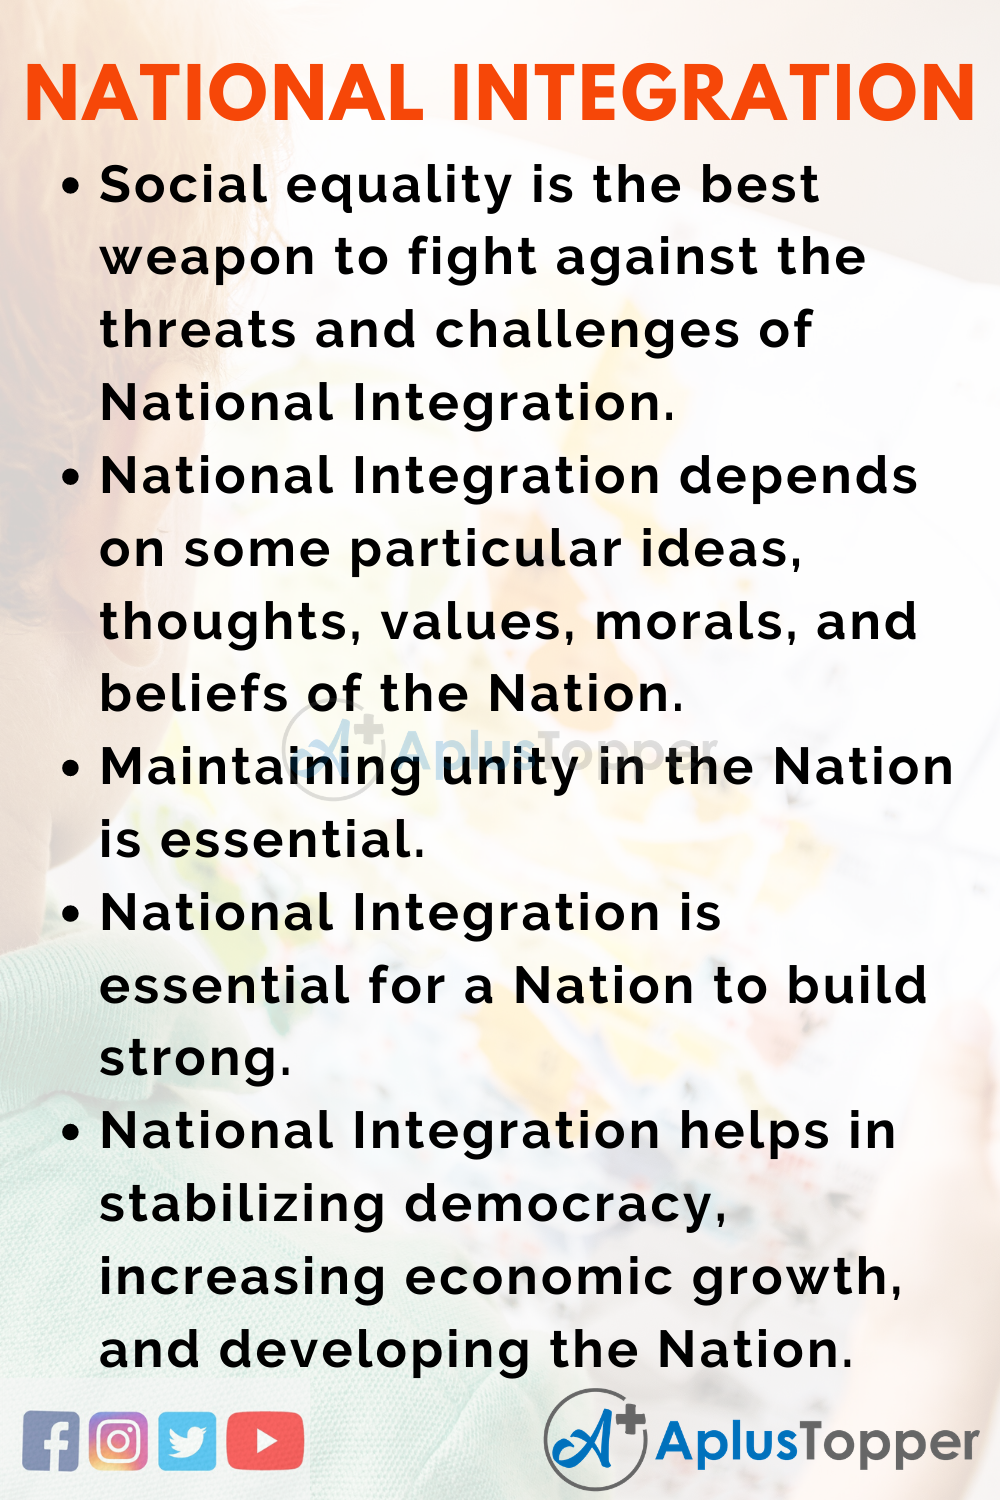 10 Lines for National Integration